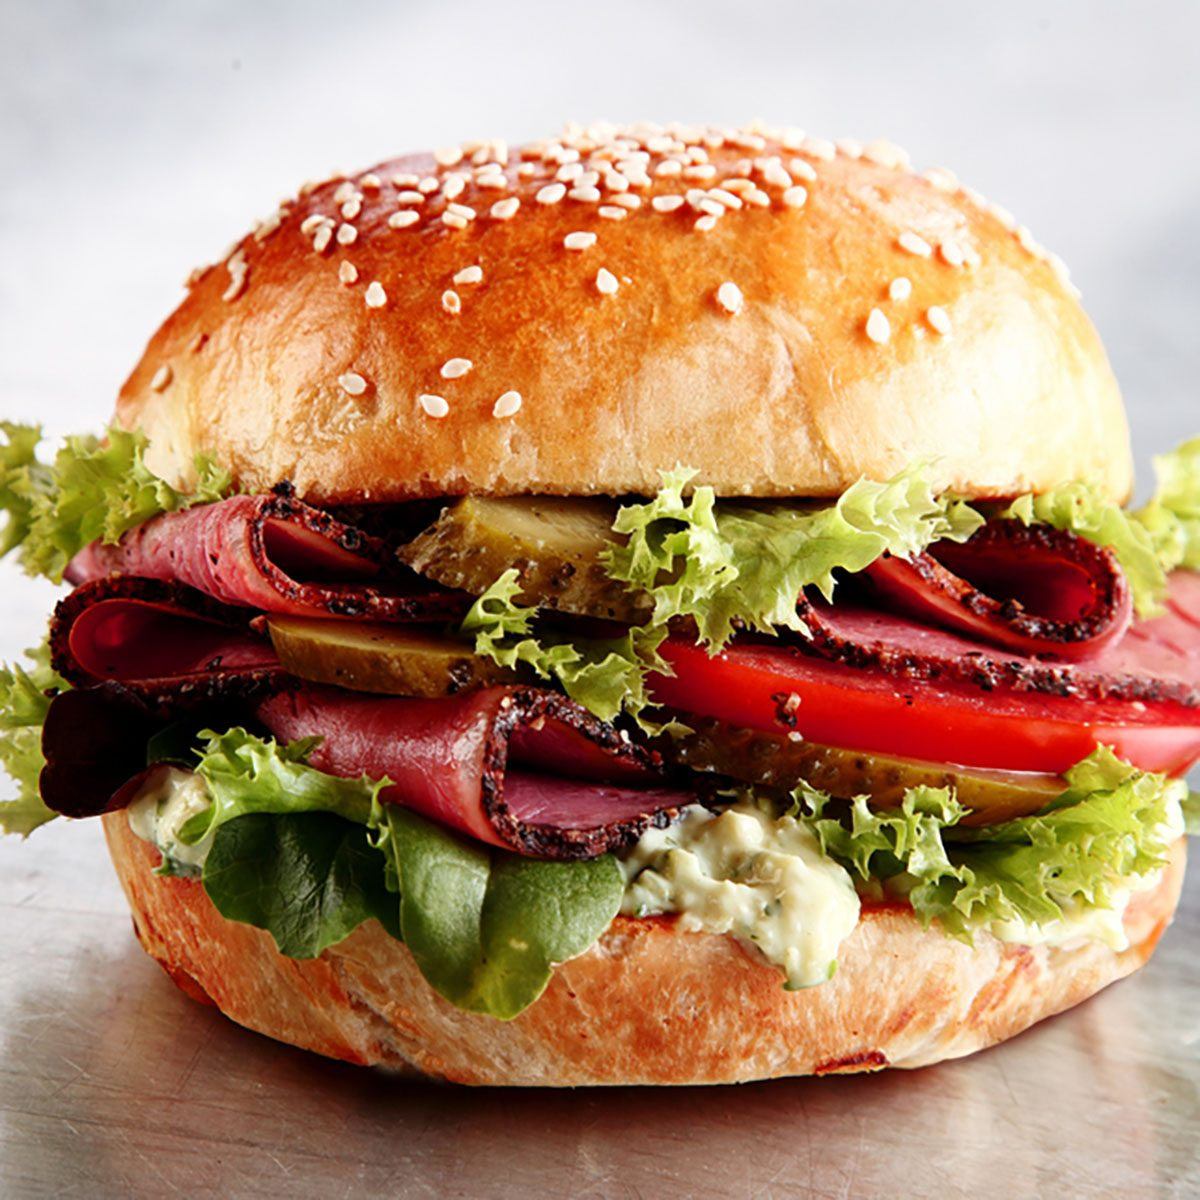 Delicious sesame bun with sliced roast beef or pastrami with lettuce, tomato, gherkin, and mayo on a silver counter in a cafeteria or restaurant